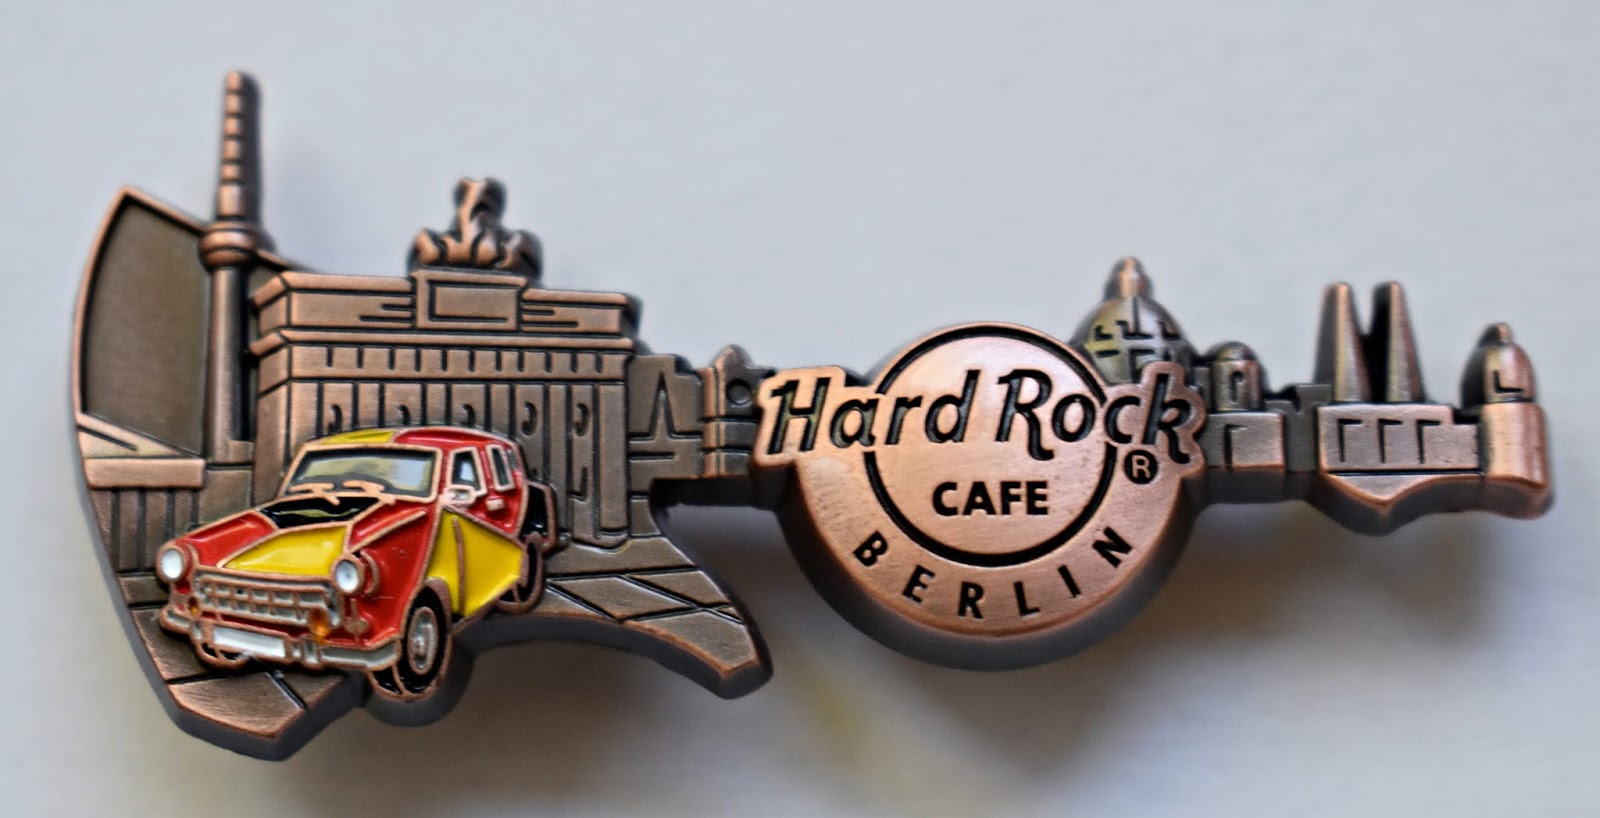 Hard Rock Cafe Hrc Pins Guitar Pins And Caps Berlin